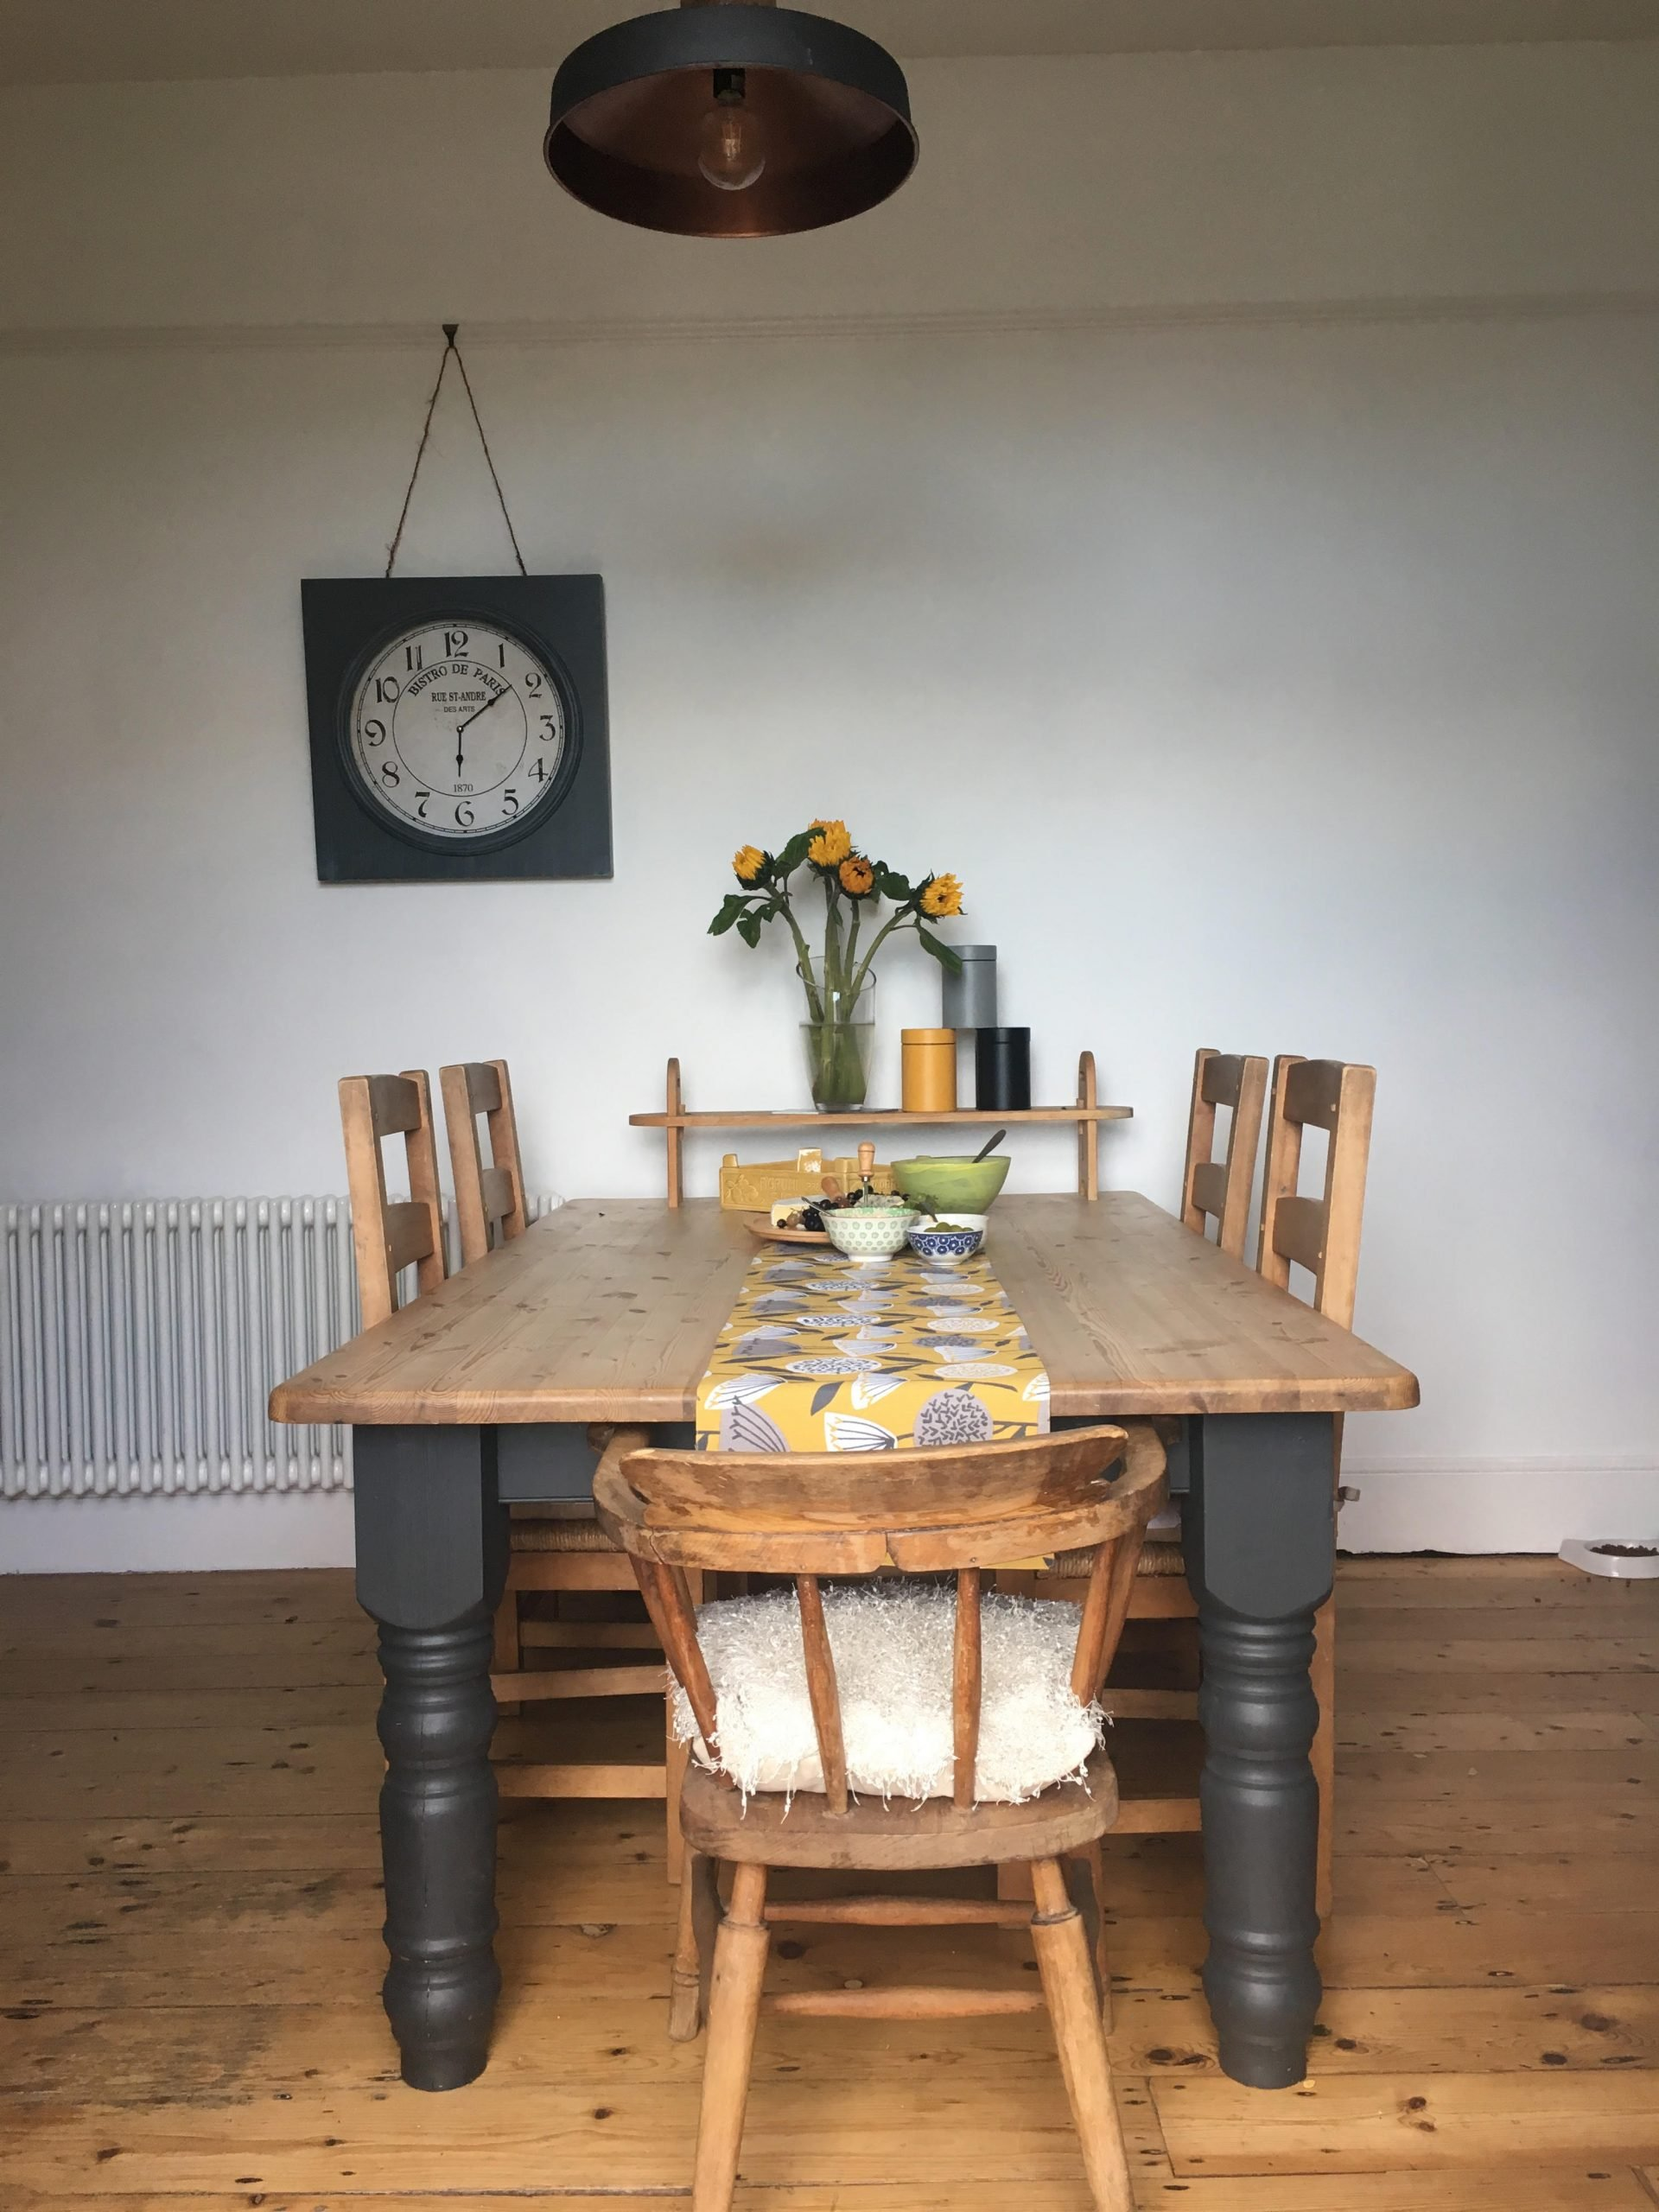 table and chairs in jayne ashenburys home